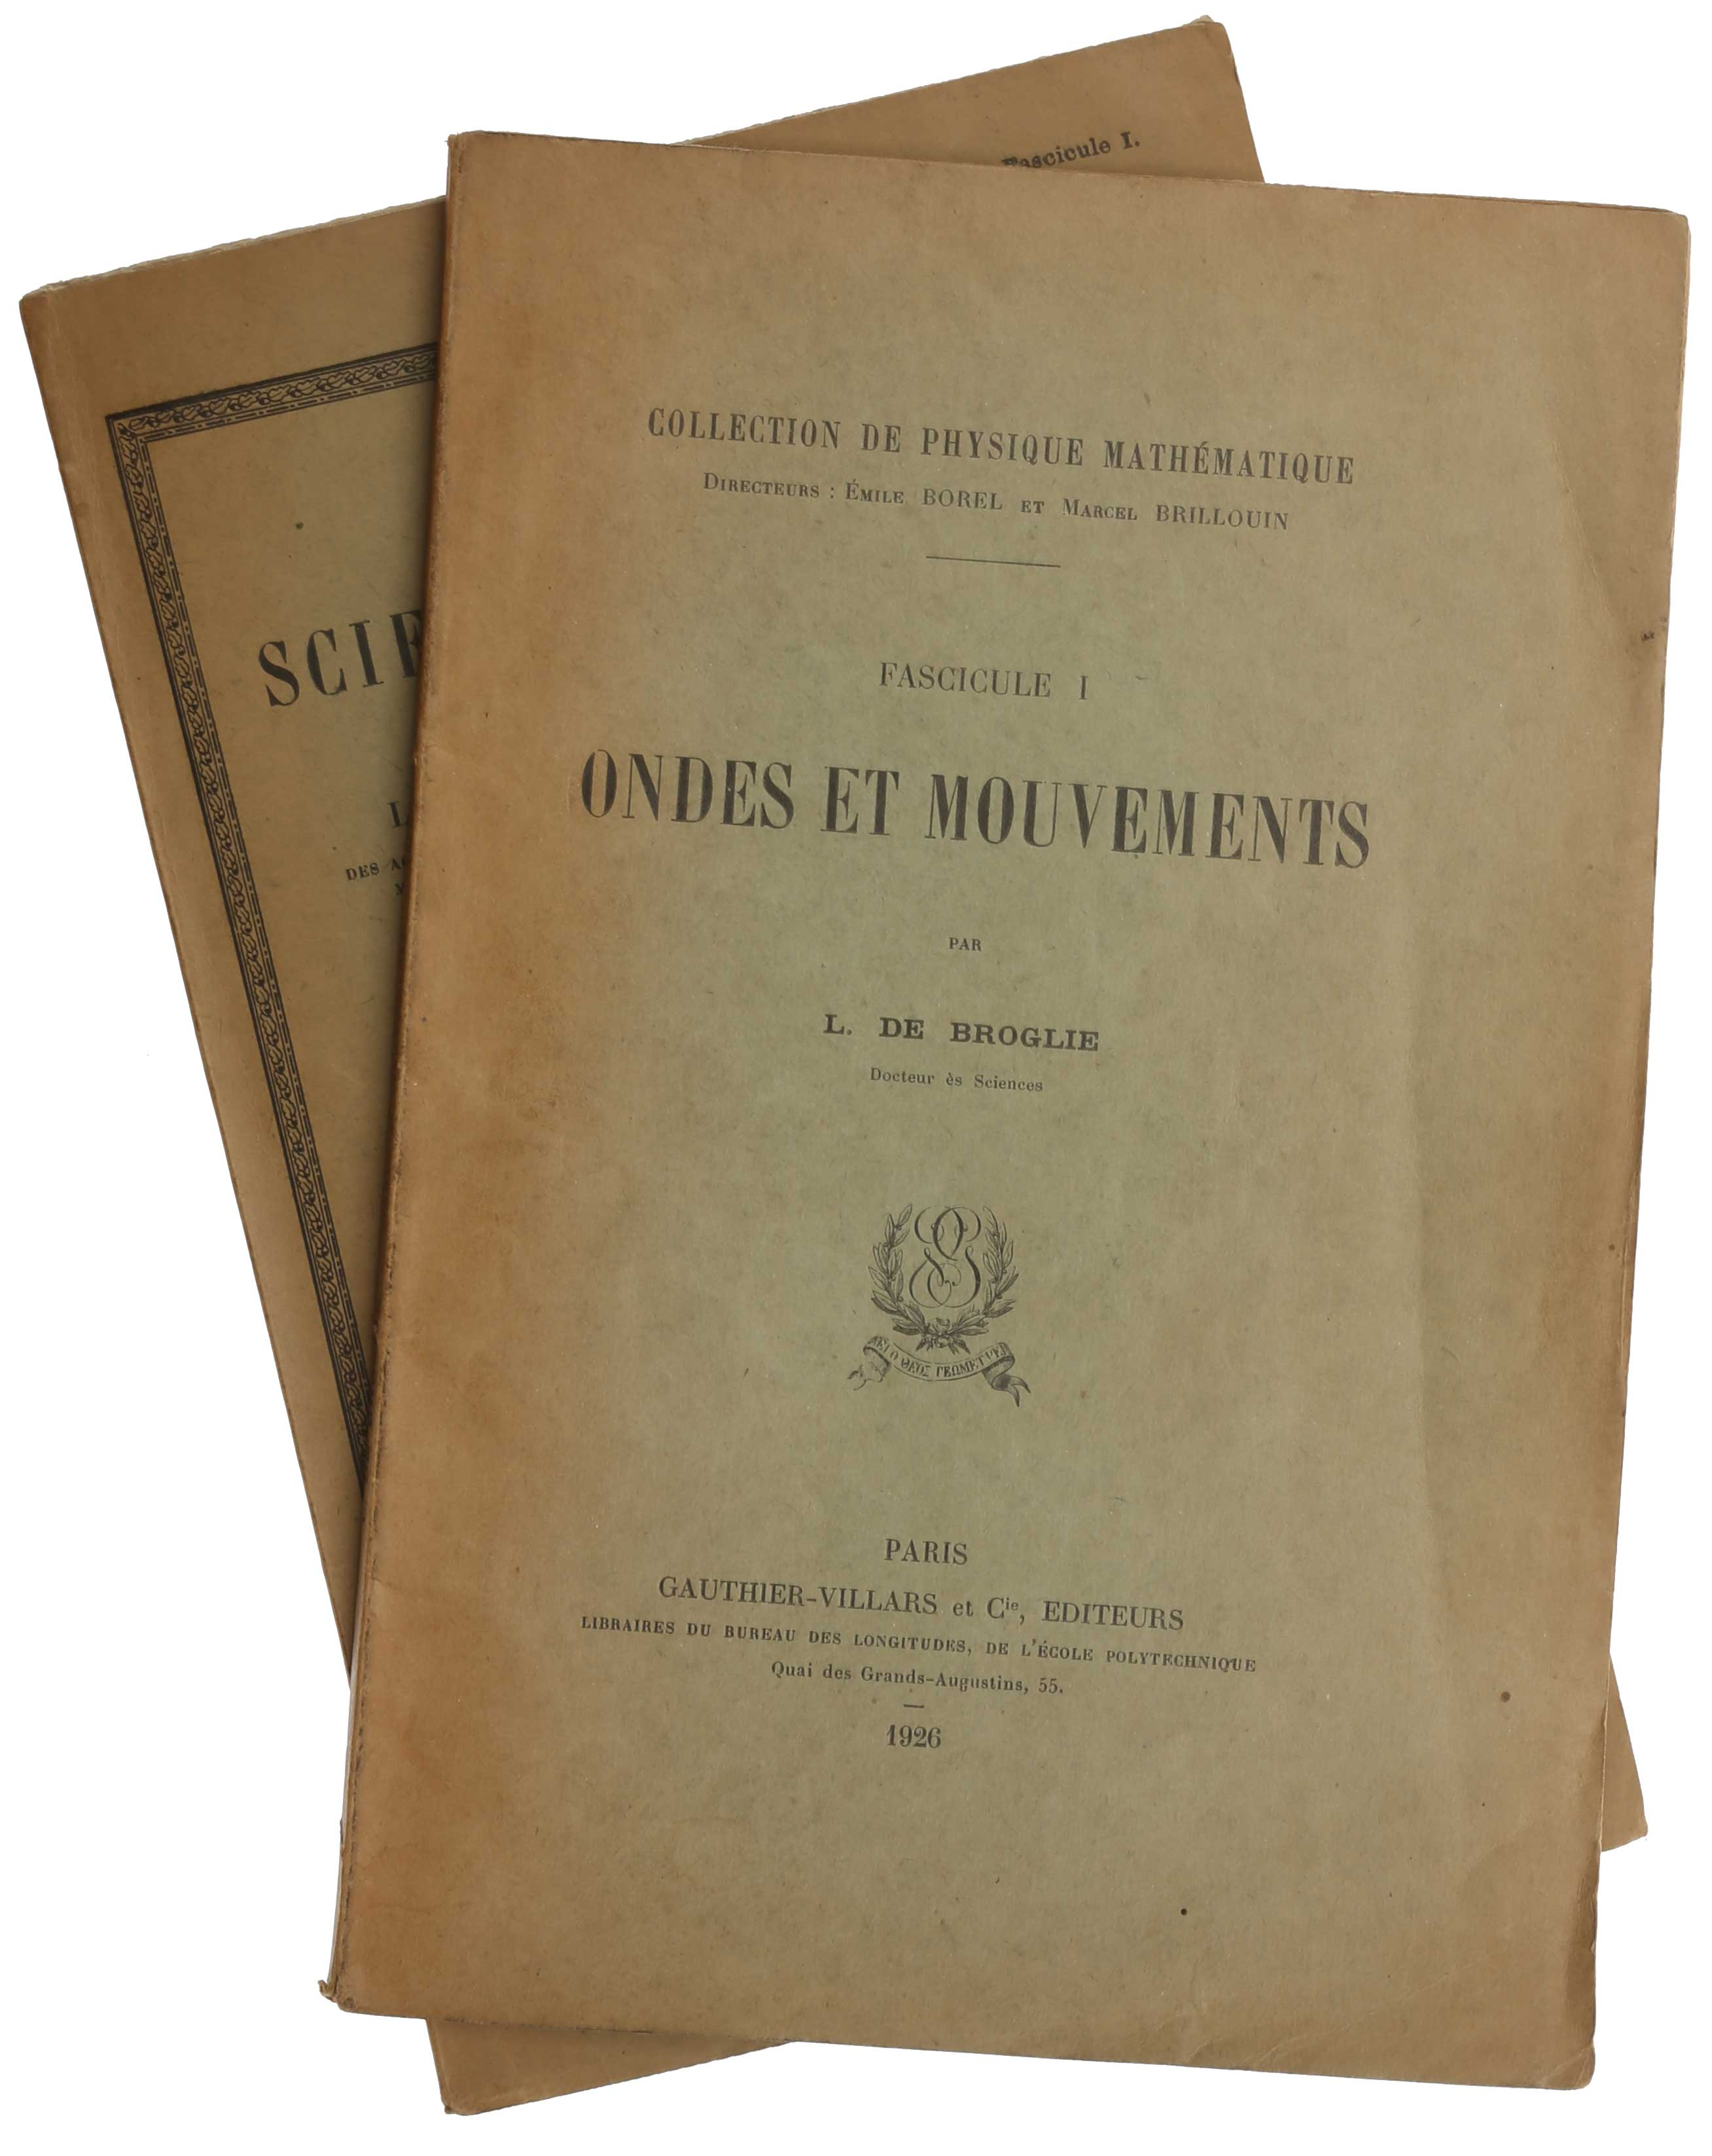 Ondes et Mouvements. Collection de Physique Mathématique; [Offered with:] La Mecanique Ondulatoire. Louis Victor Pierre Raymond De BROGLIE.